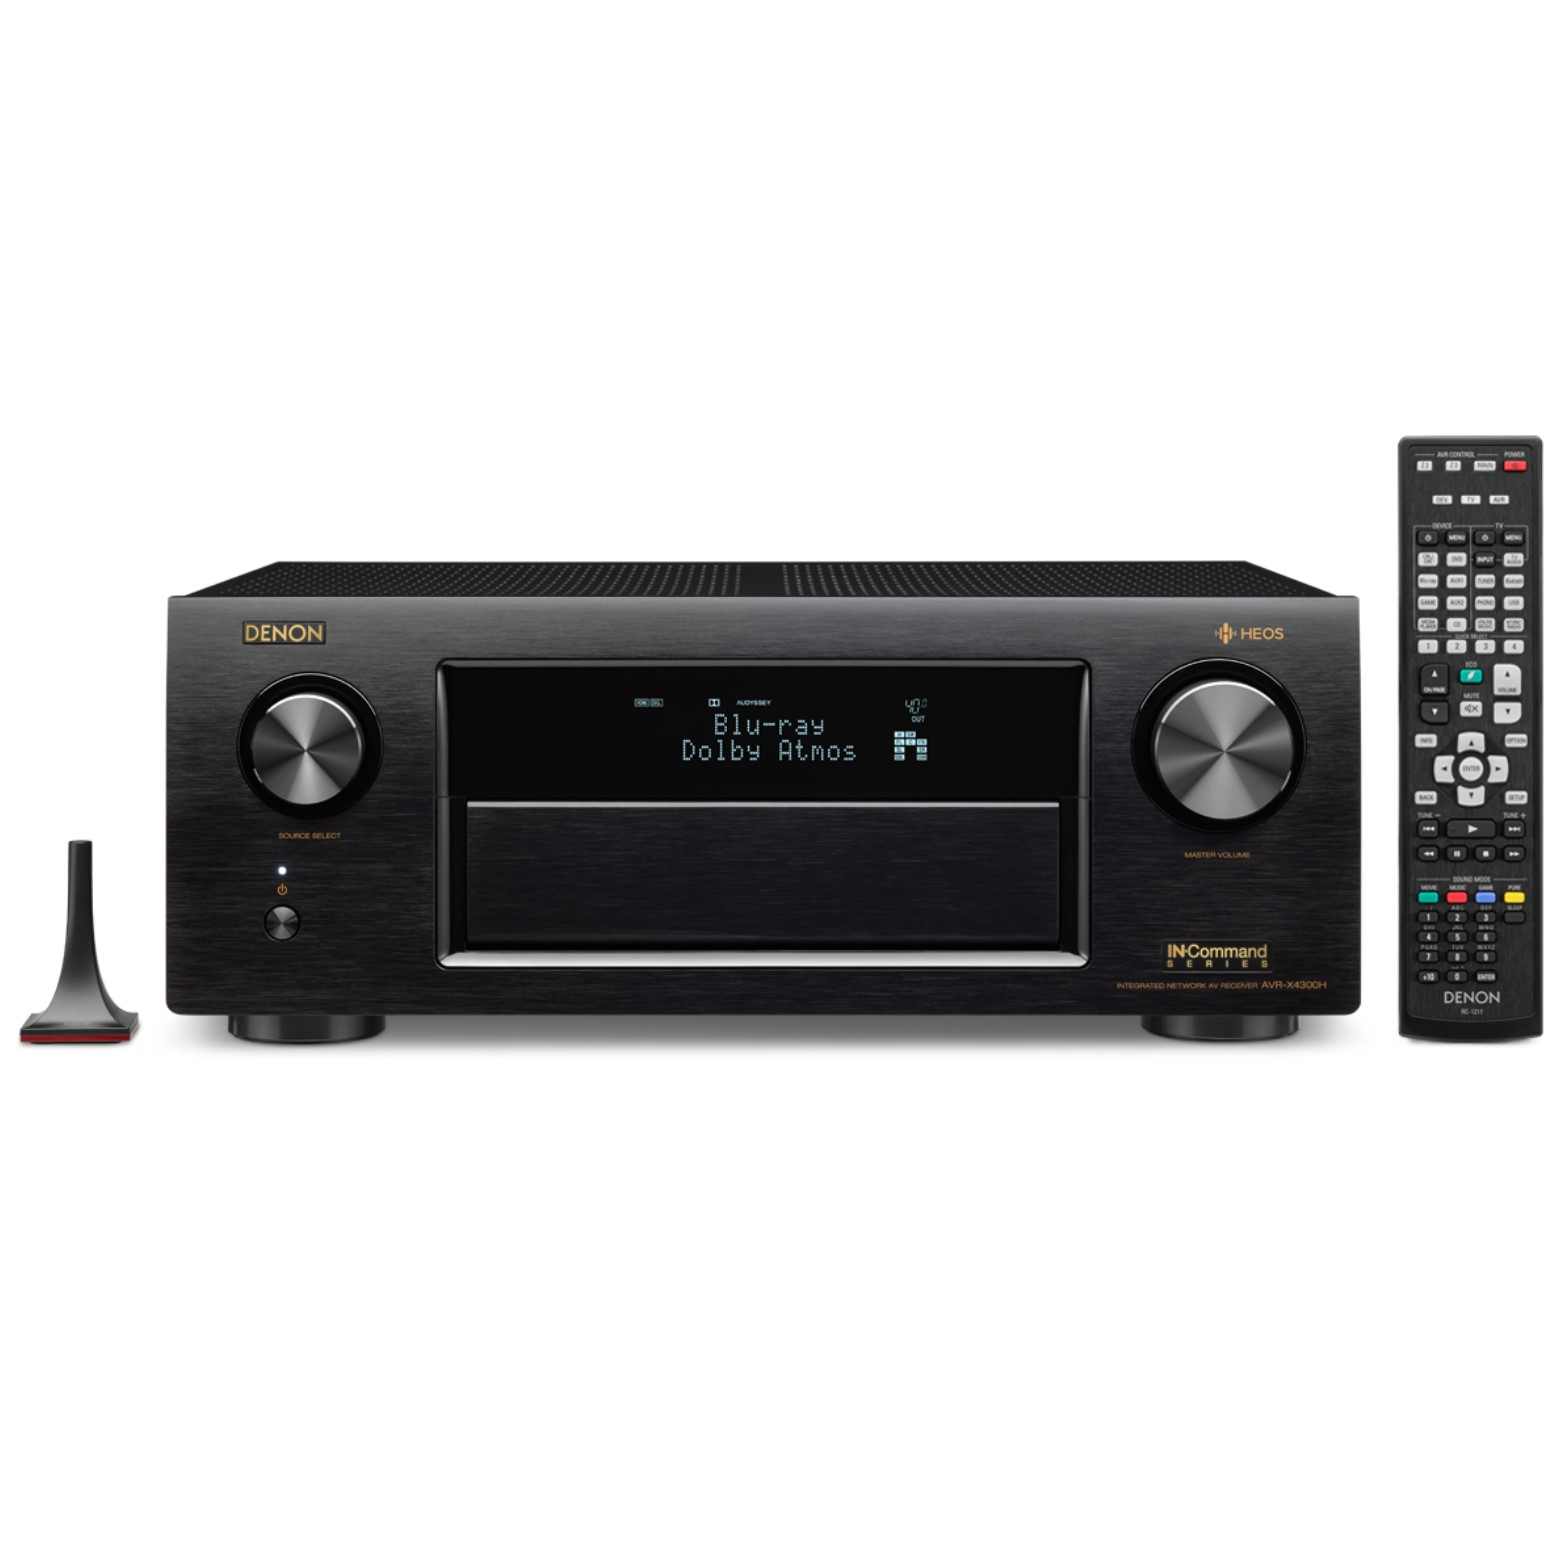 Denon AVR-X4300H 9.2-Channel Full 4K Ultra HD A V Receiver with Built-In HEOS Wireless Technology by Denon